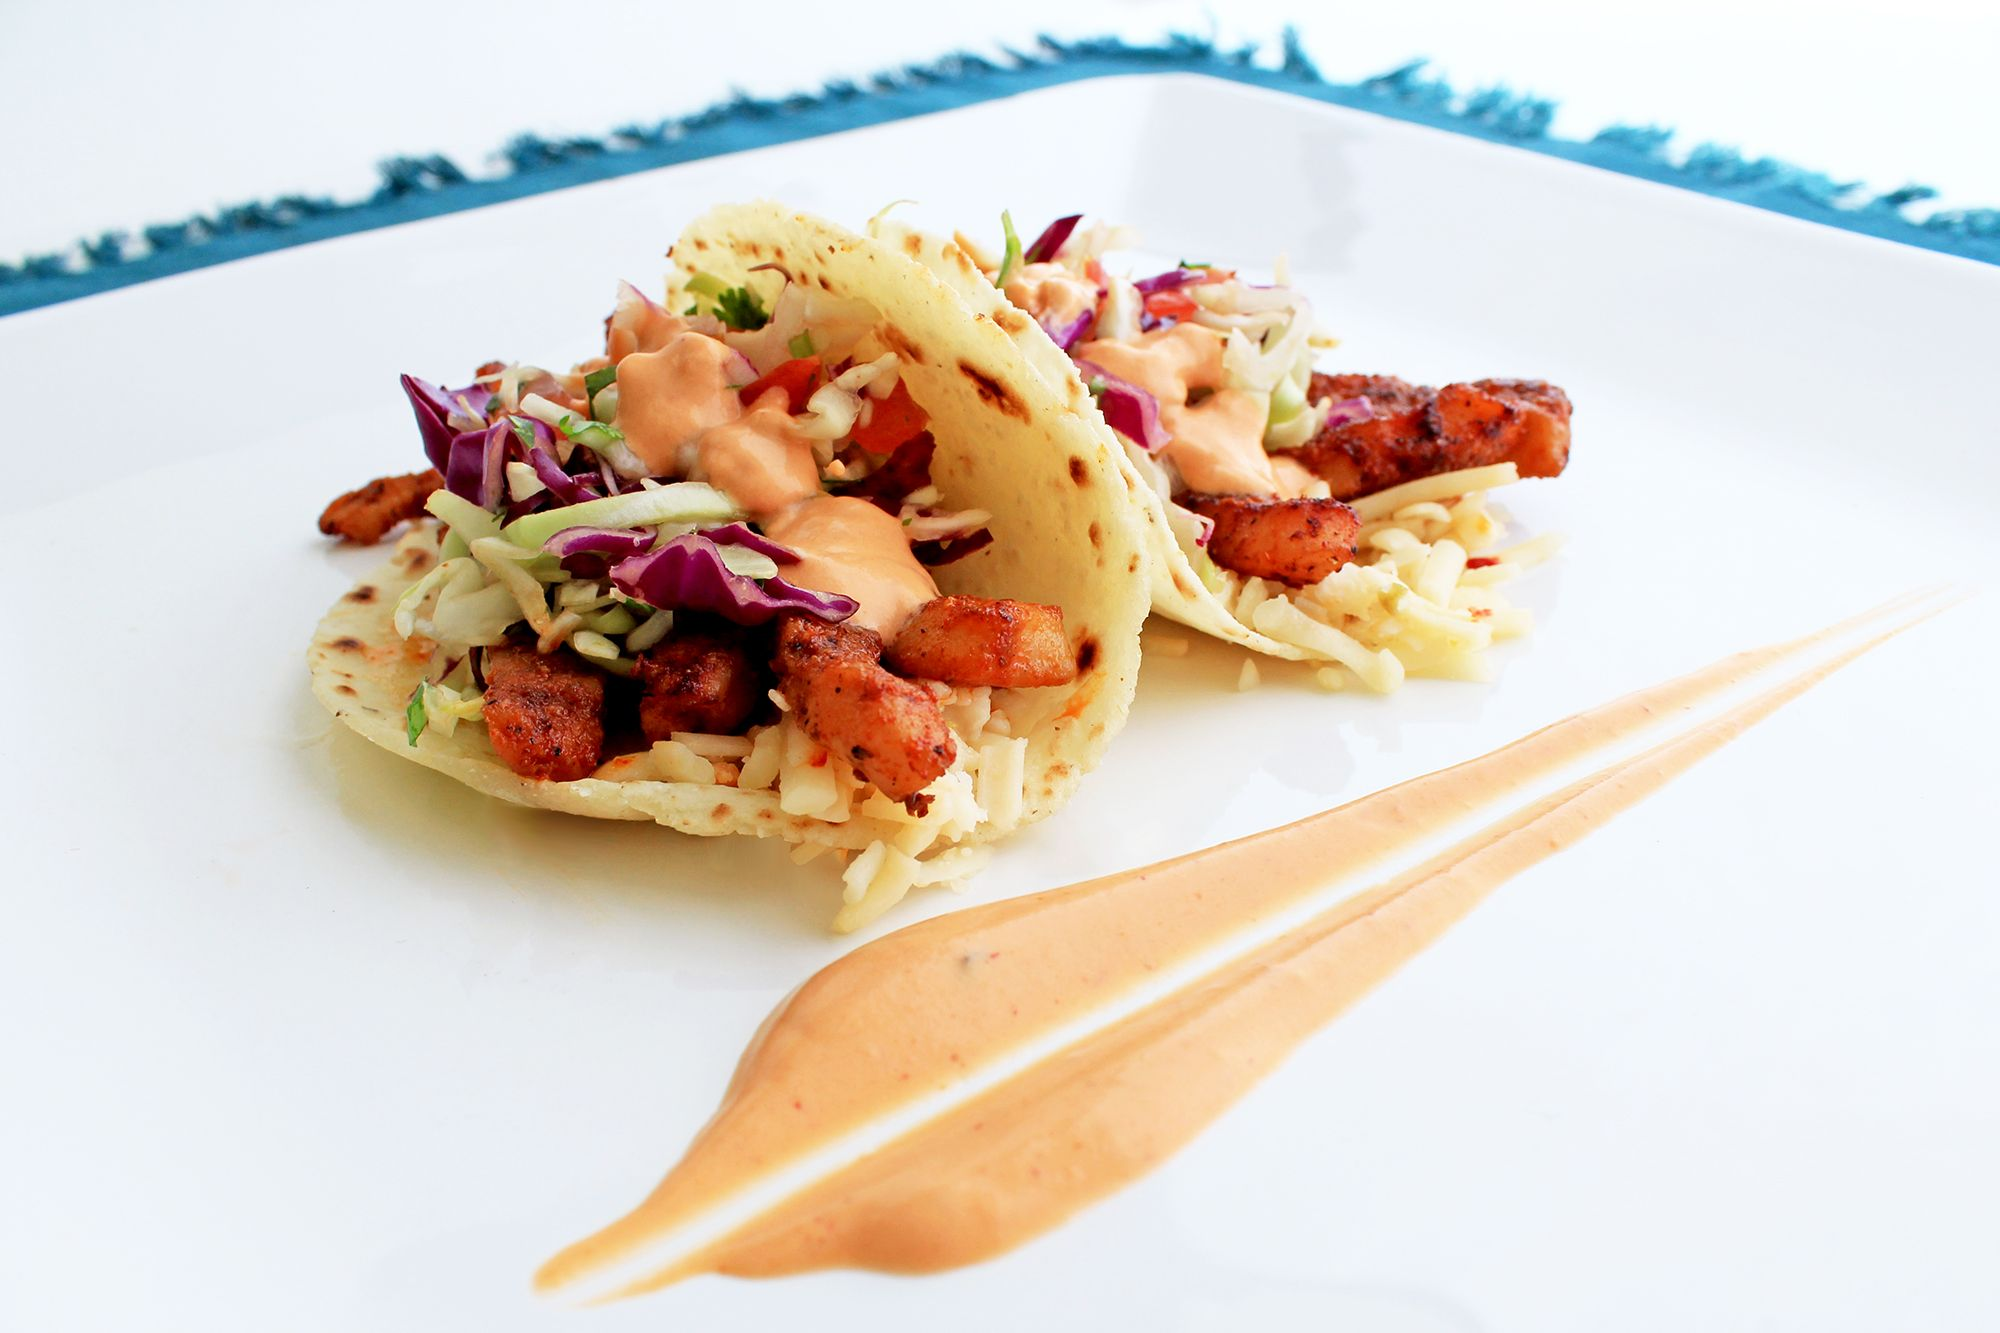 Here we have a duo of our tacos de calamar representing the final two times we will be serving this delectable June special, which is tonight & Monday for lunch.  Try it soon!  This evening 5:30P to 8:30P we will be at the Laguna Niguel Summer Concert Series (Crown Valley Community Park, 29751 Crown Valley Parkway #LagunaNiguel CA).  Hope to see you there.  More: http://www.sohotaco.com/2014/06/27/we-will-be-serving-our-taco-de-calamar-only-two-more-times-try-it-tonight  #tacocatering…